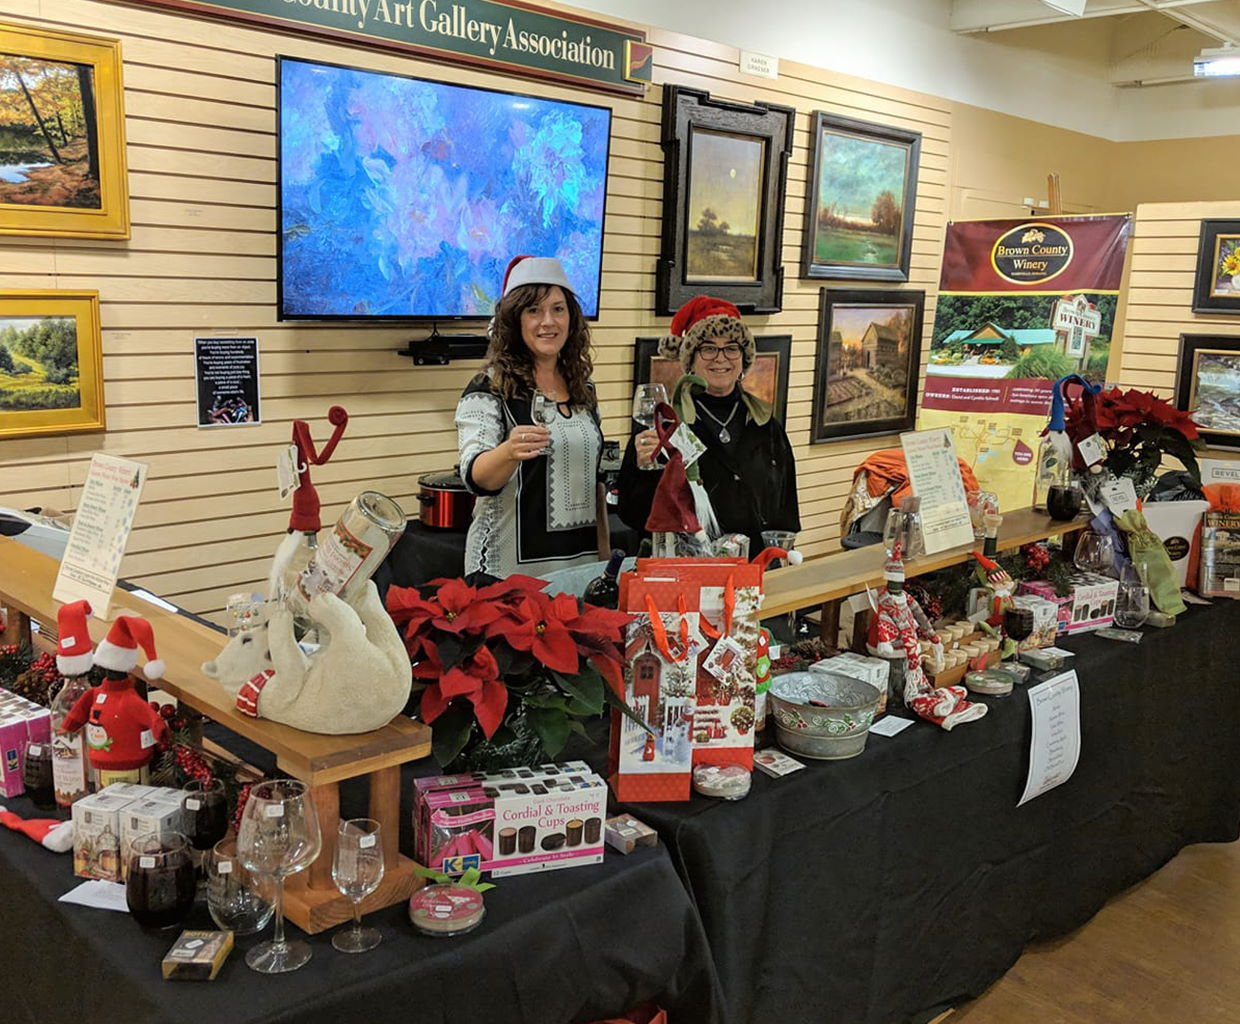 Uplands Winter Wine Market at the Brown County Art Gallery